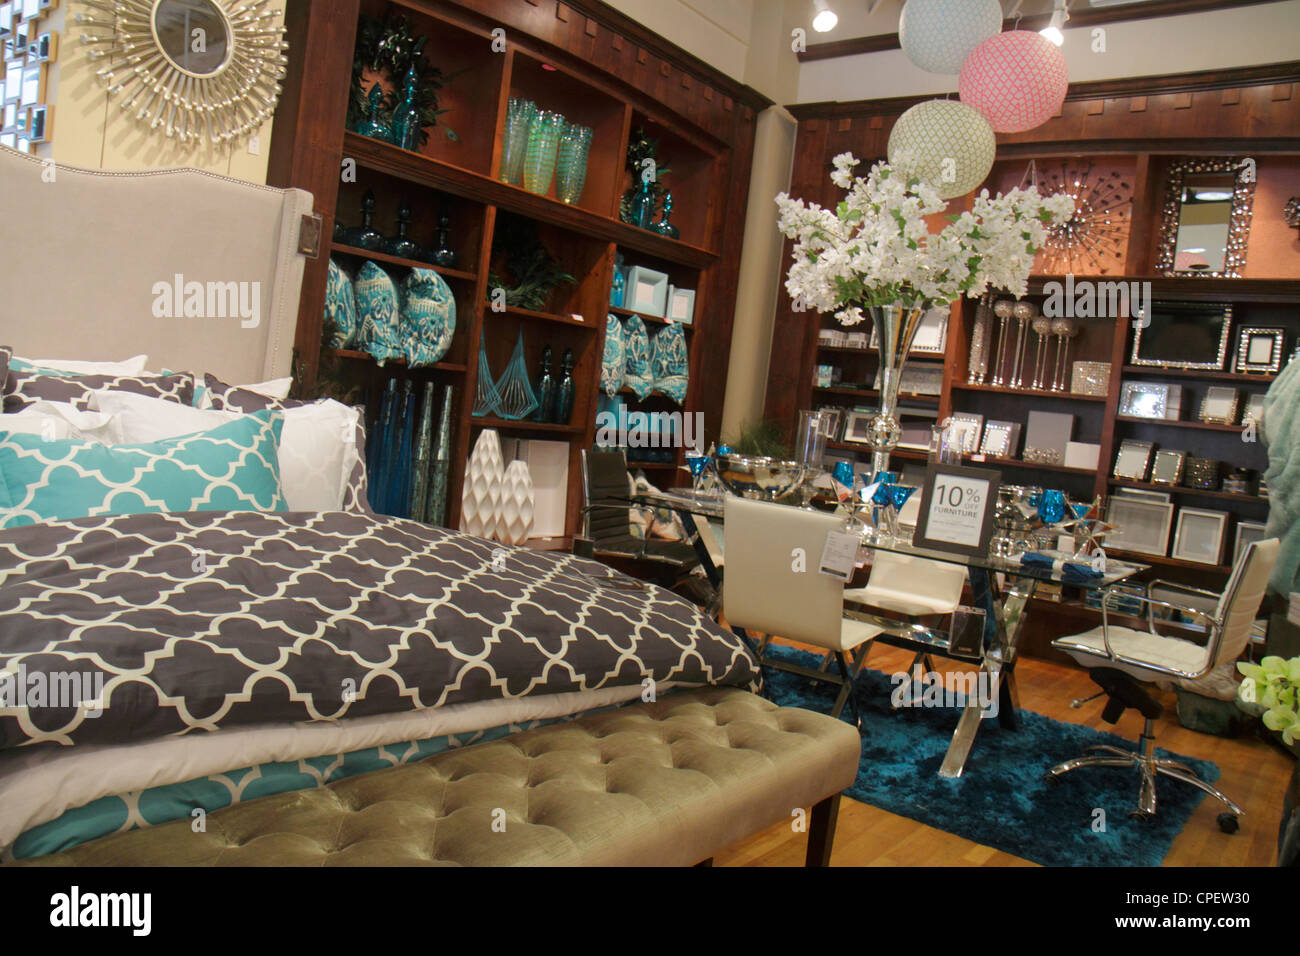 business real home florida shopping gallerie photo mizner decor display upscale boca plaza stock for retail bedd furniture sale z raton park